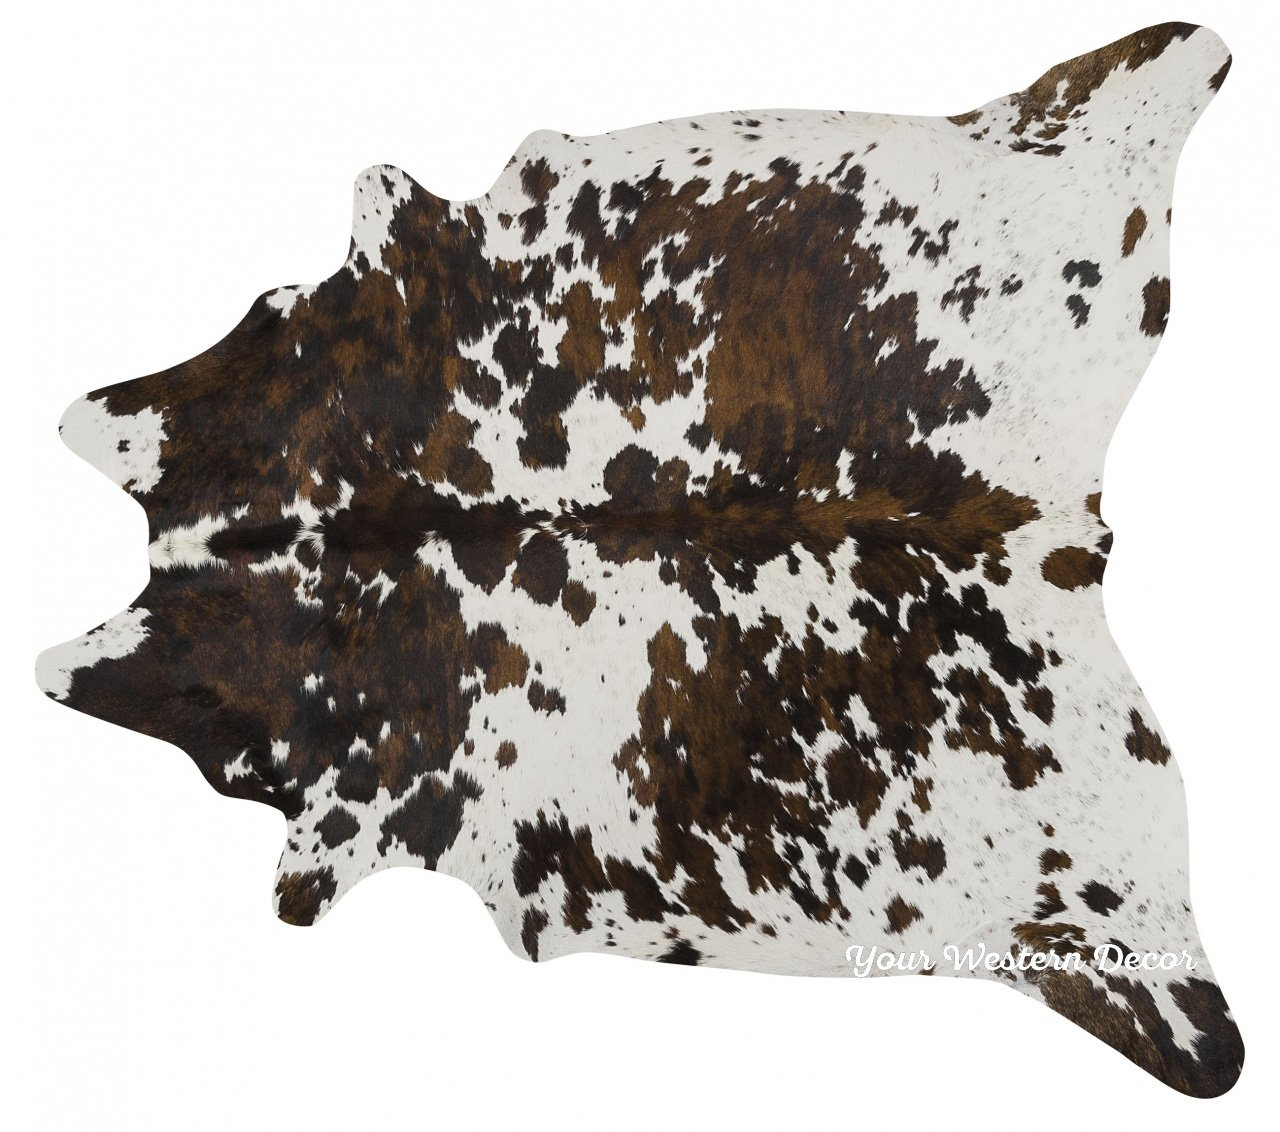 ecowhides Tricolor Brazilian Cowhide Area Rug 7 x 6 ft Tricolor Brazilian Cowhide Rug: XL Cowskin Leather Hide for Home Living Room XL